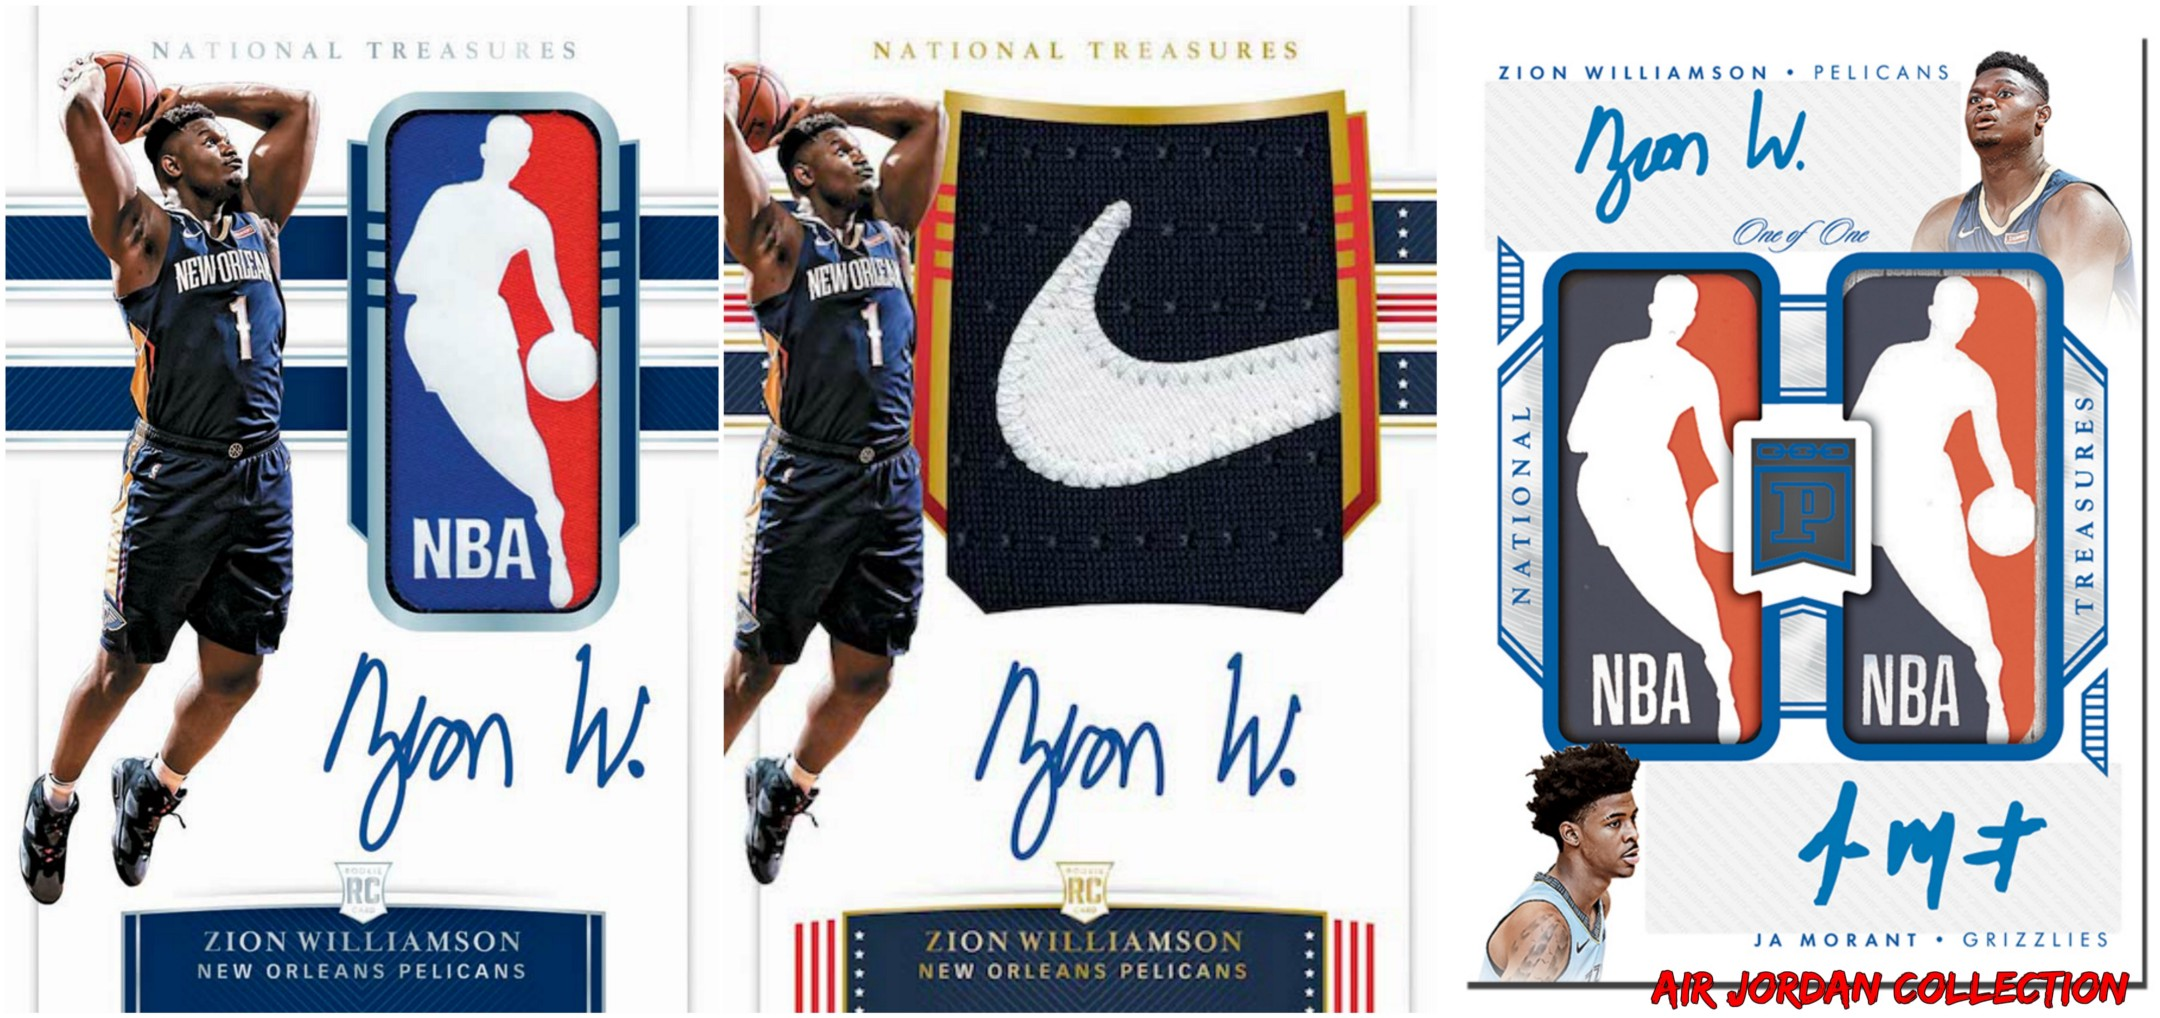 Are Sports Cards Valuable? Understanding the Market